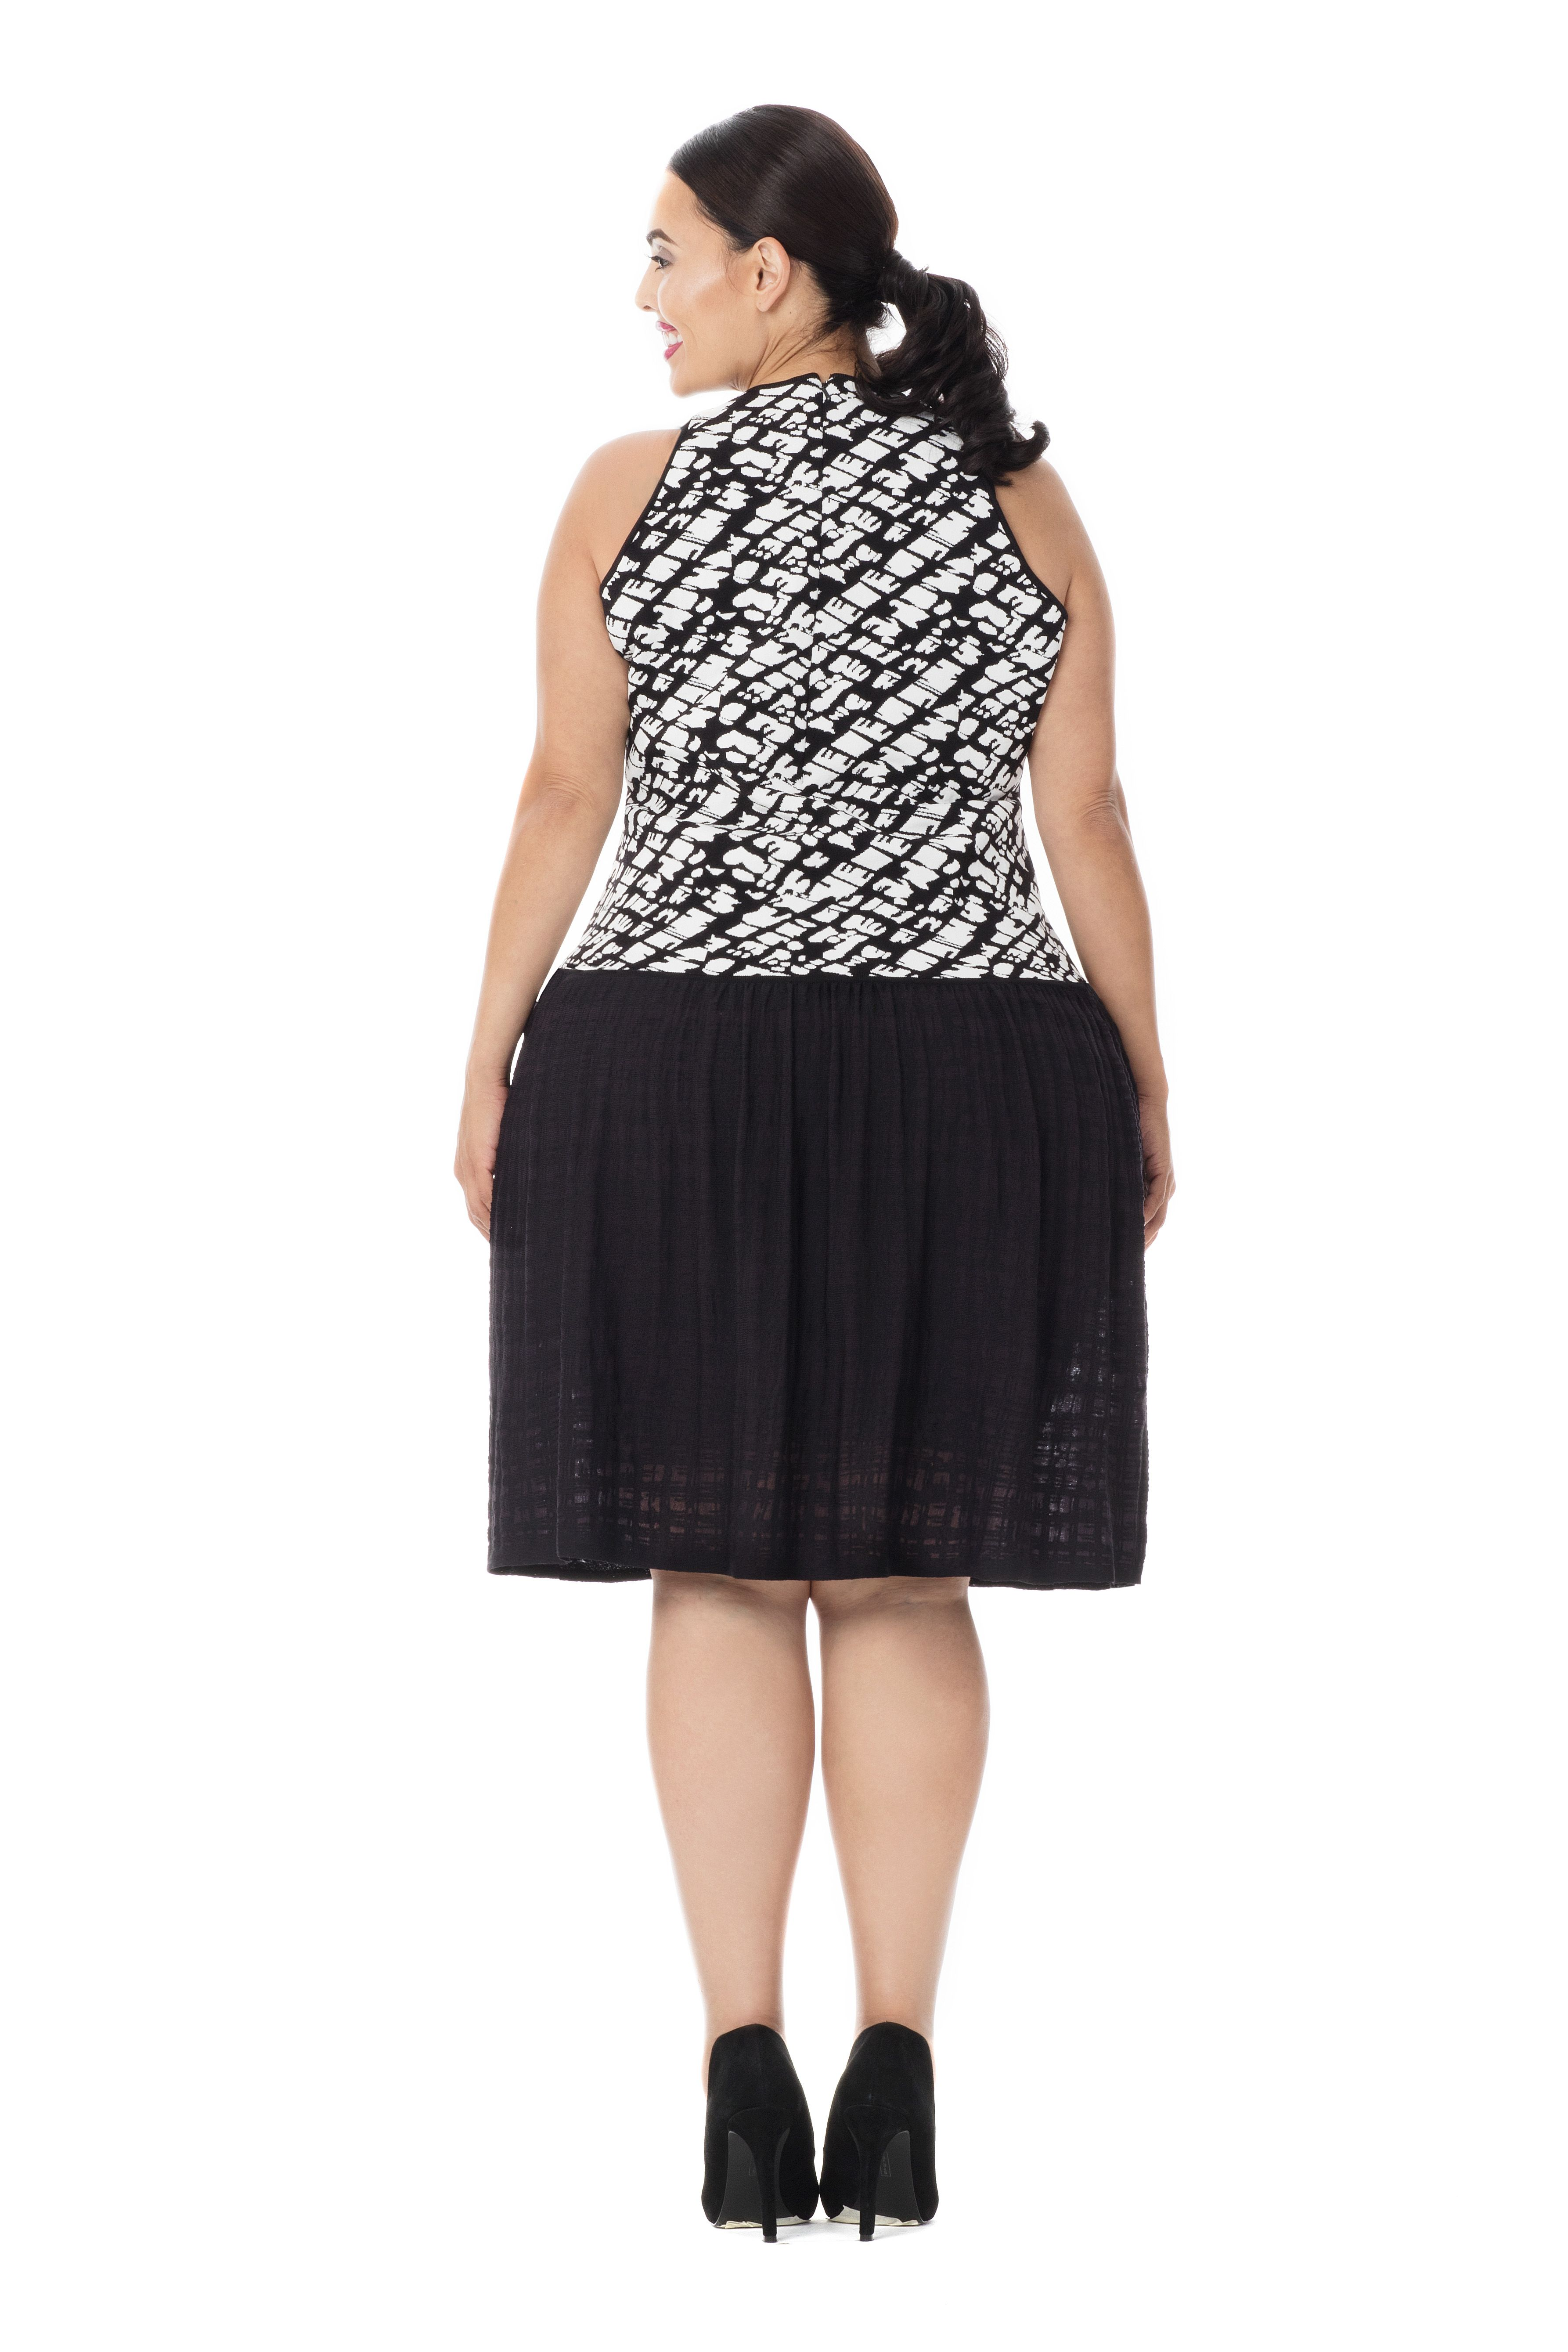 Luxury Plus Size Fashion Best For All Body Types The Salma Dress